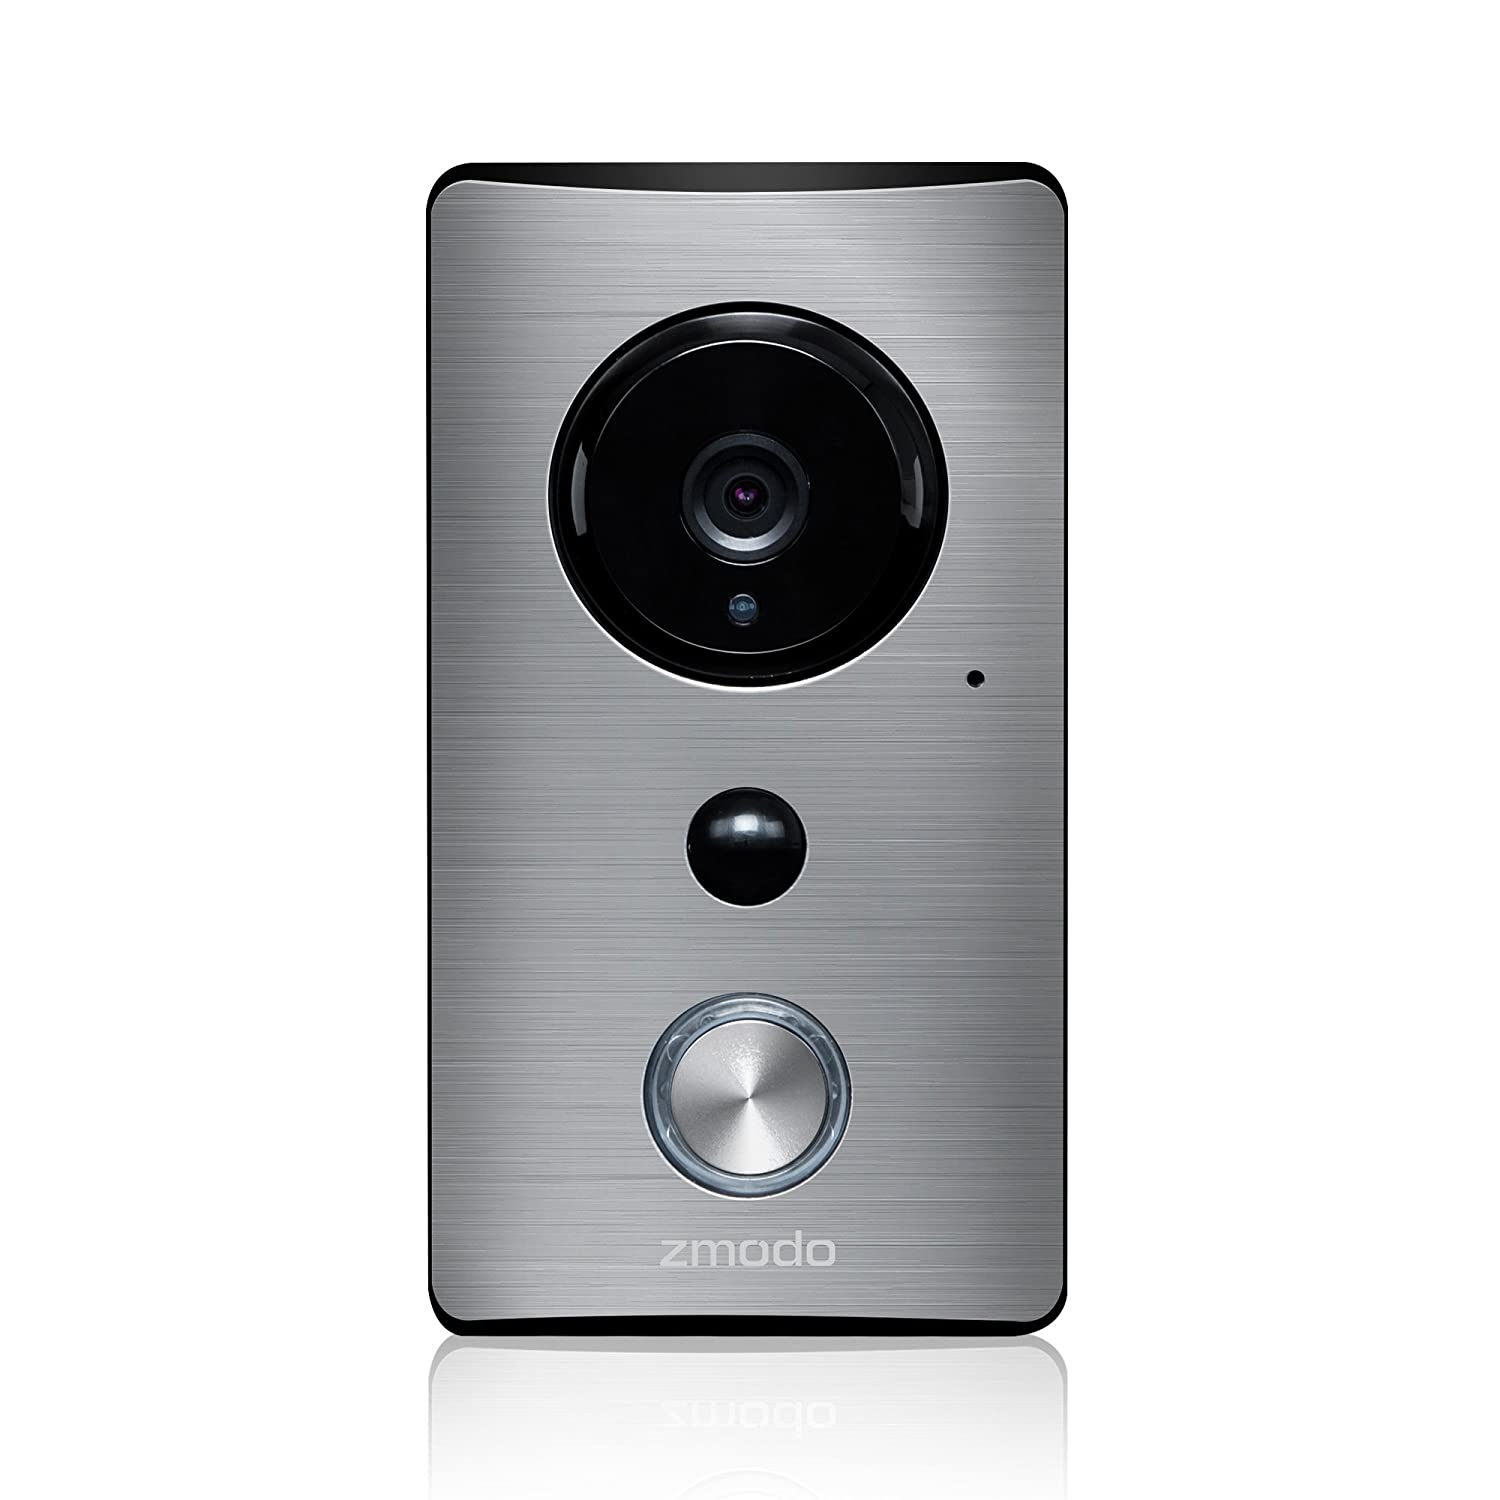 Zmodo Smart Greet WiFi Video Doorbell